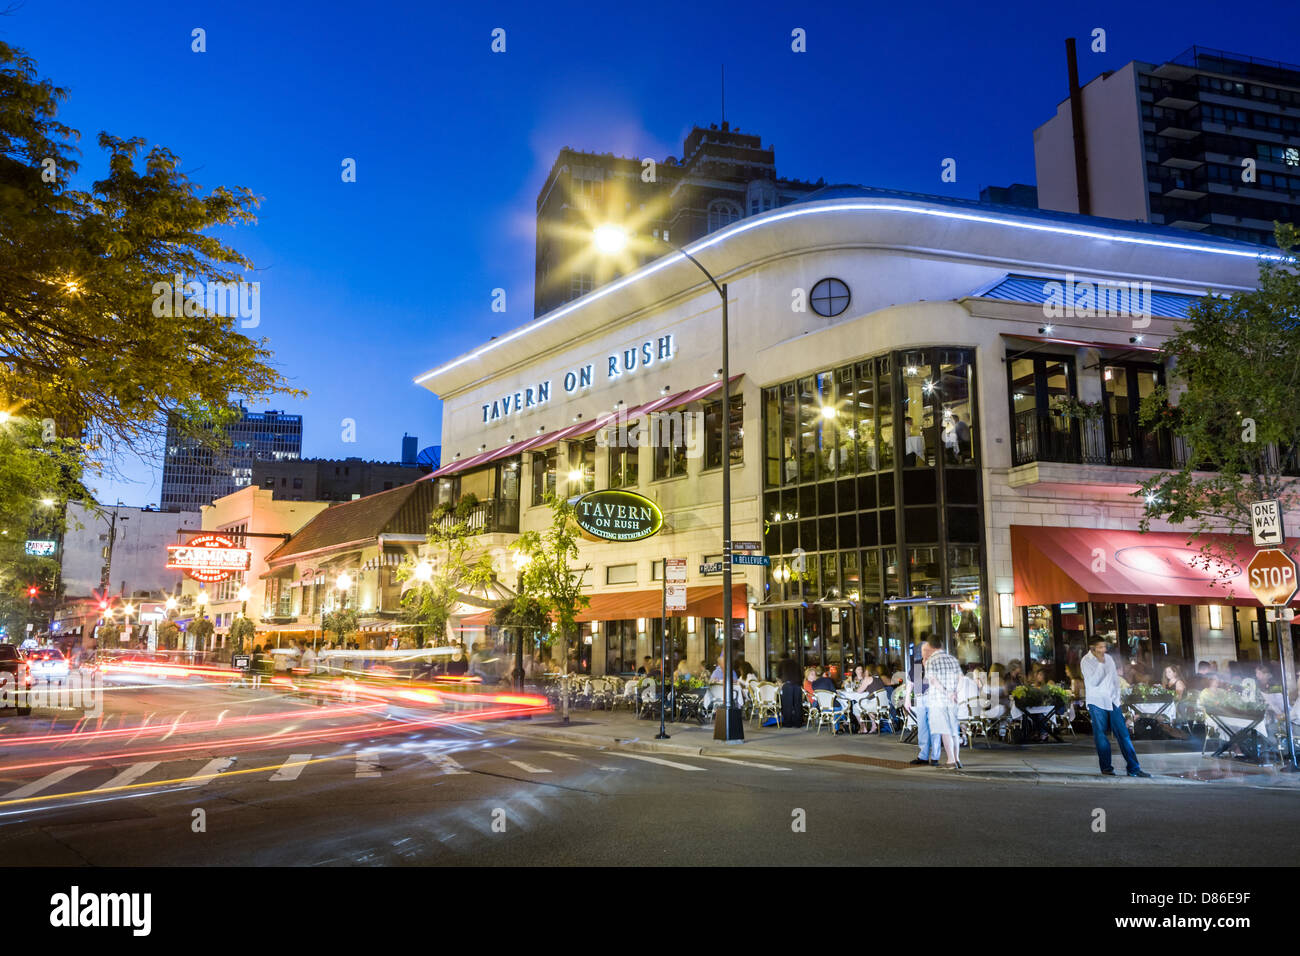 Nightlife on Rush Street, part of Gold Coast, Chicago, Illinois - Stock Image